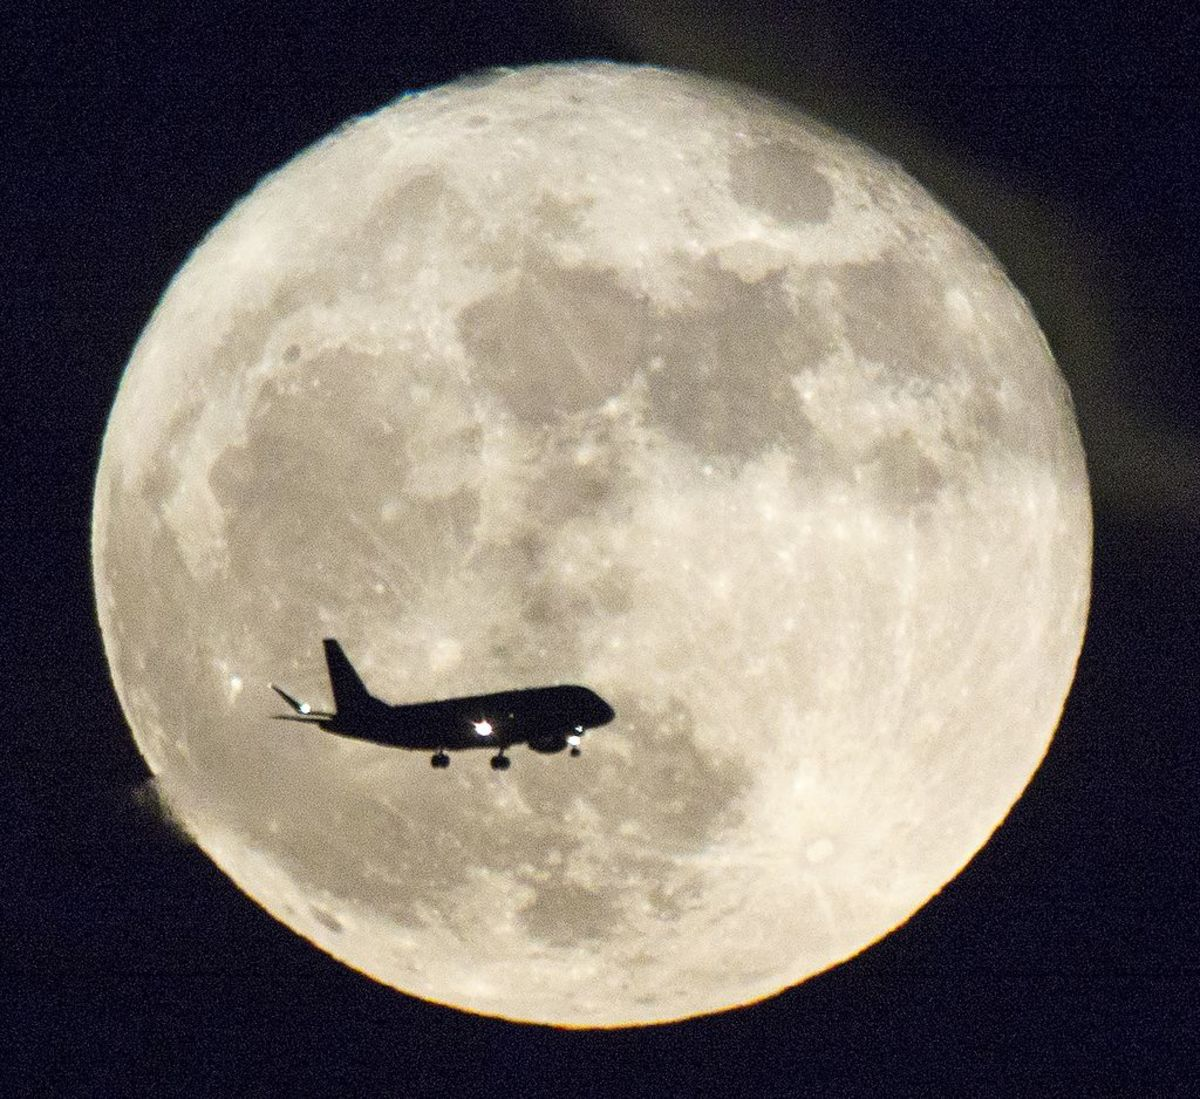 A jetliner is silhouetted against a Supermoon in Austin, Texas on November 14 in 2016, photo by Jay Godwin